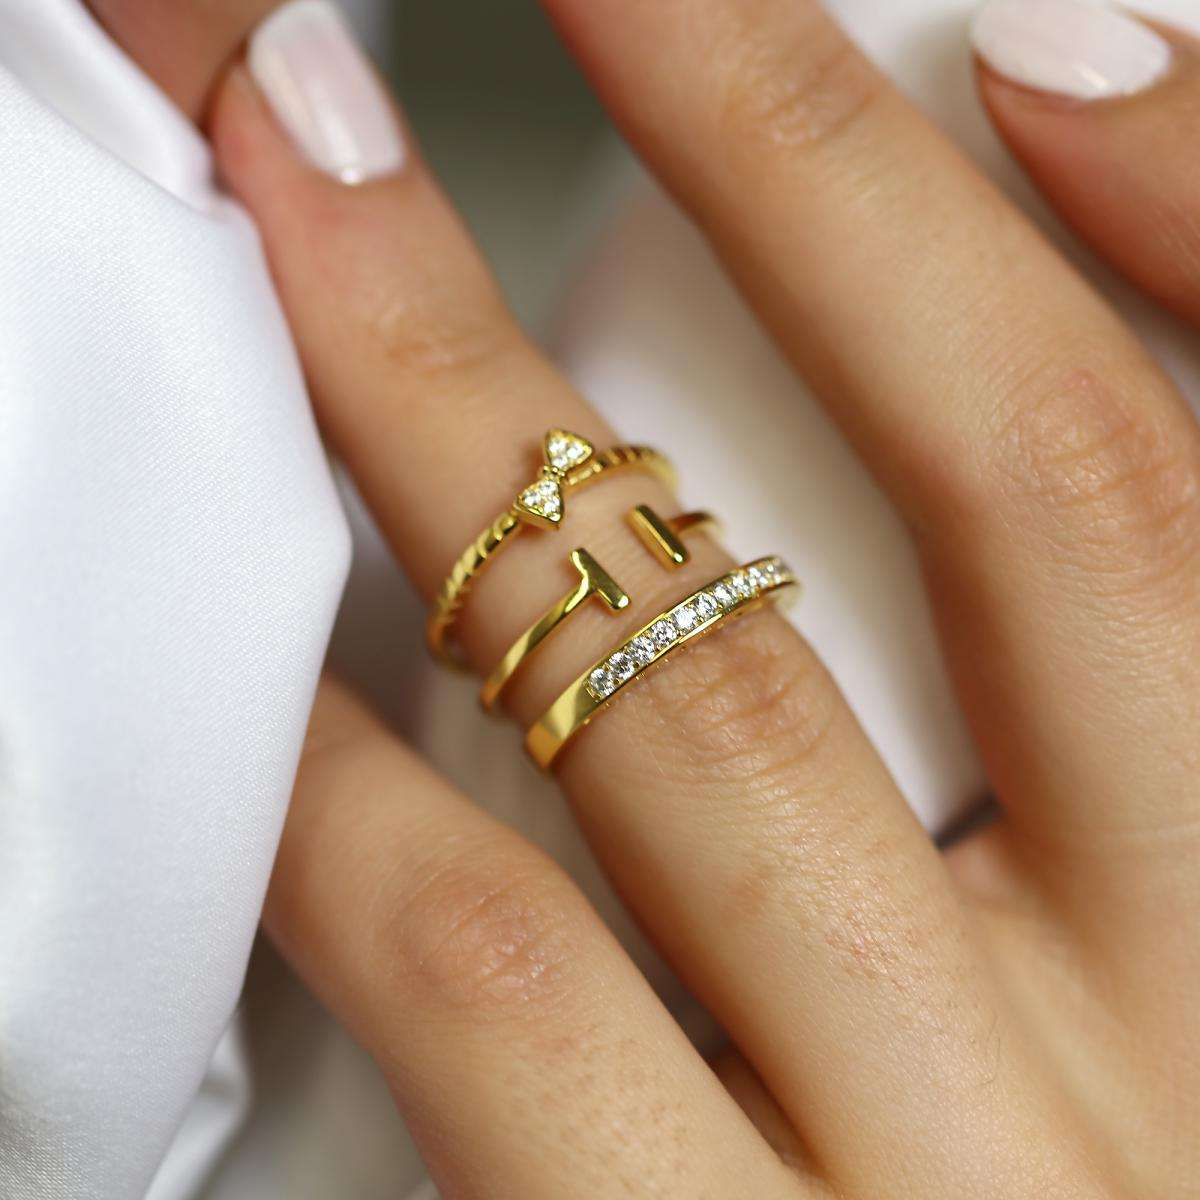 Alterative image for Gold Plated Sterling Silver Bar & CZ Eternity Stacking Ring Set